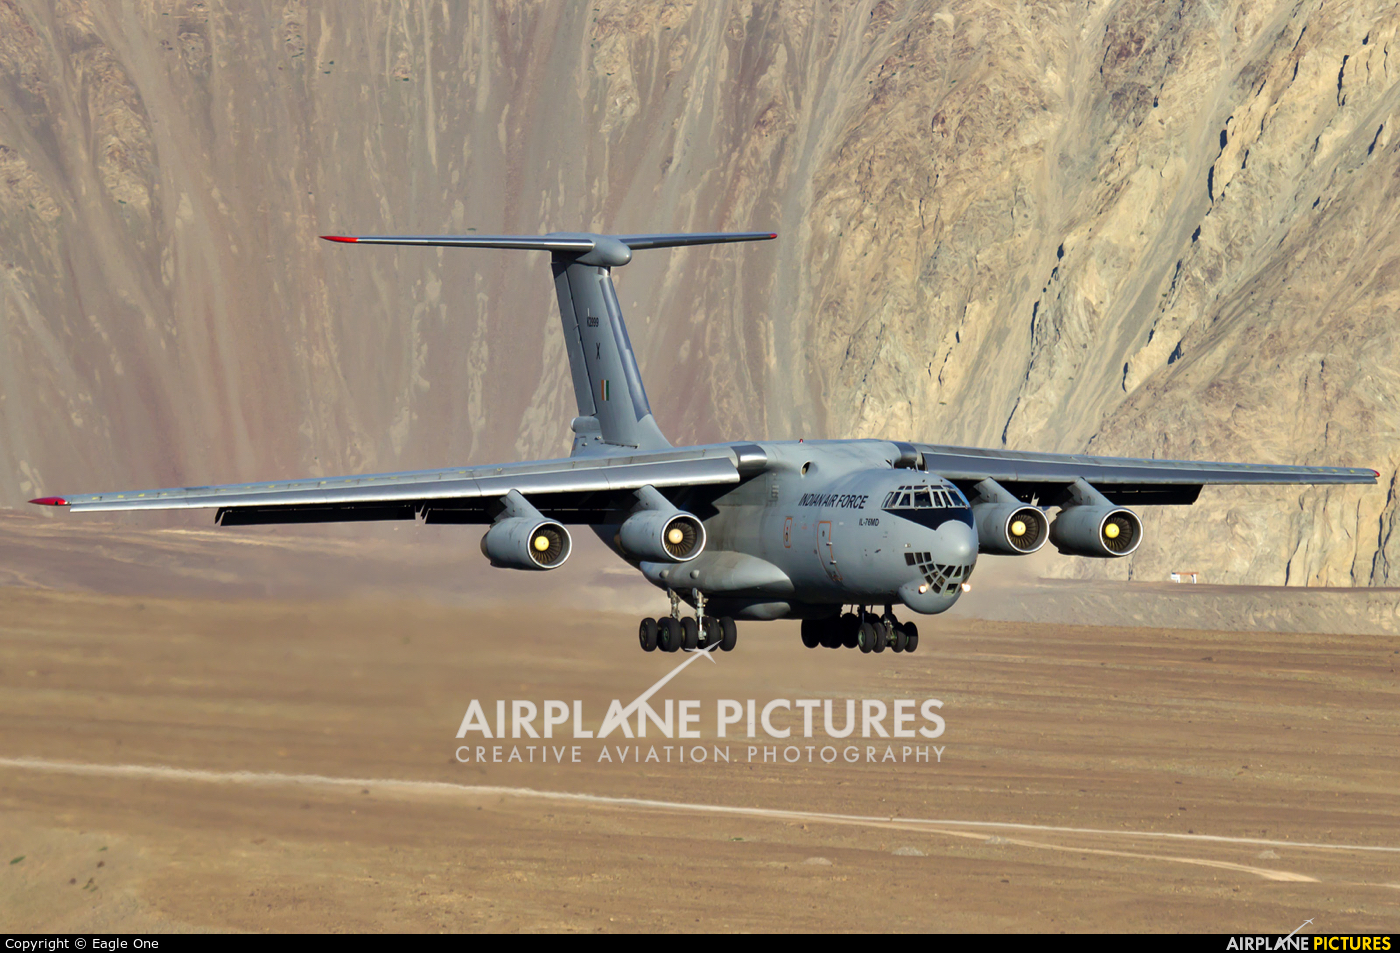 India - Air Force K2999 aircraft at Undisclosed location